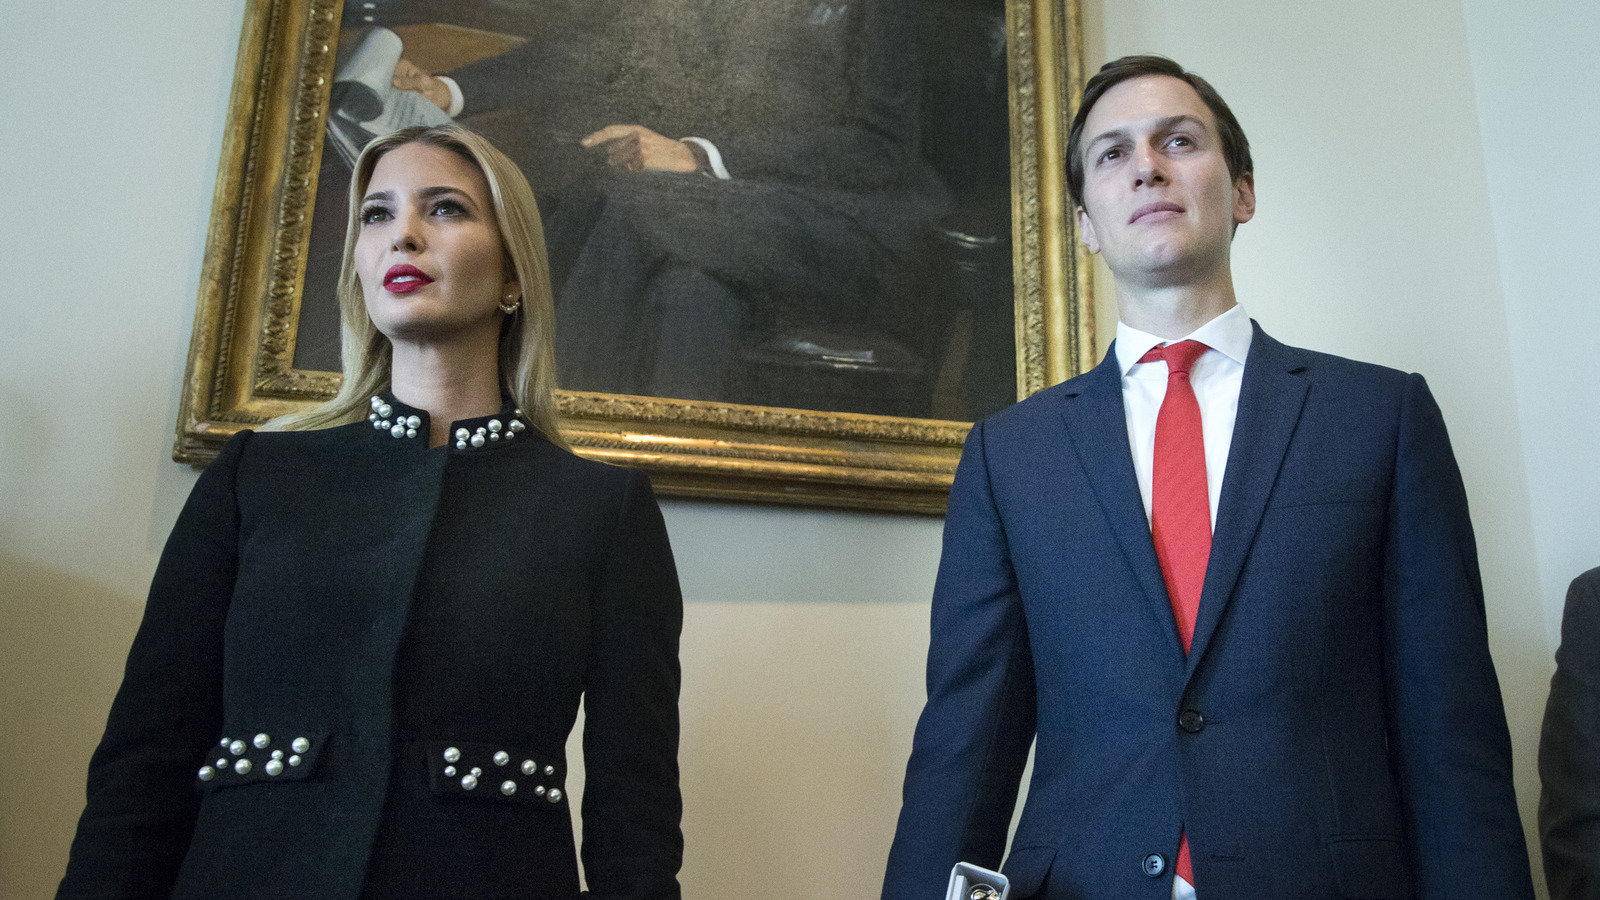 Why Ivanka And Jared's Choice For Their Kids' School Has Miami Parents Seeing Red